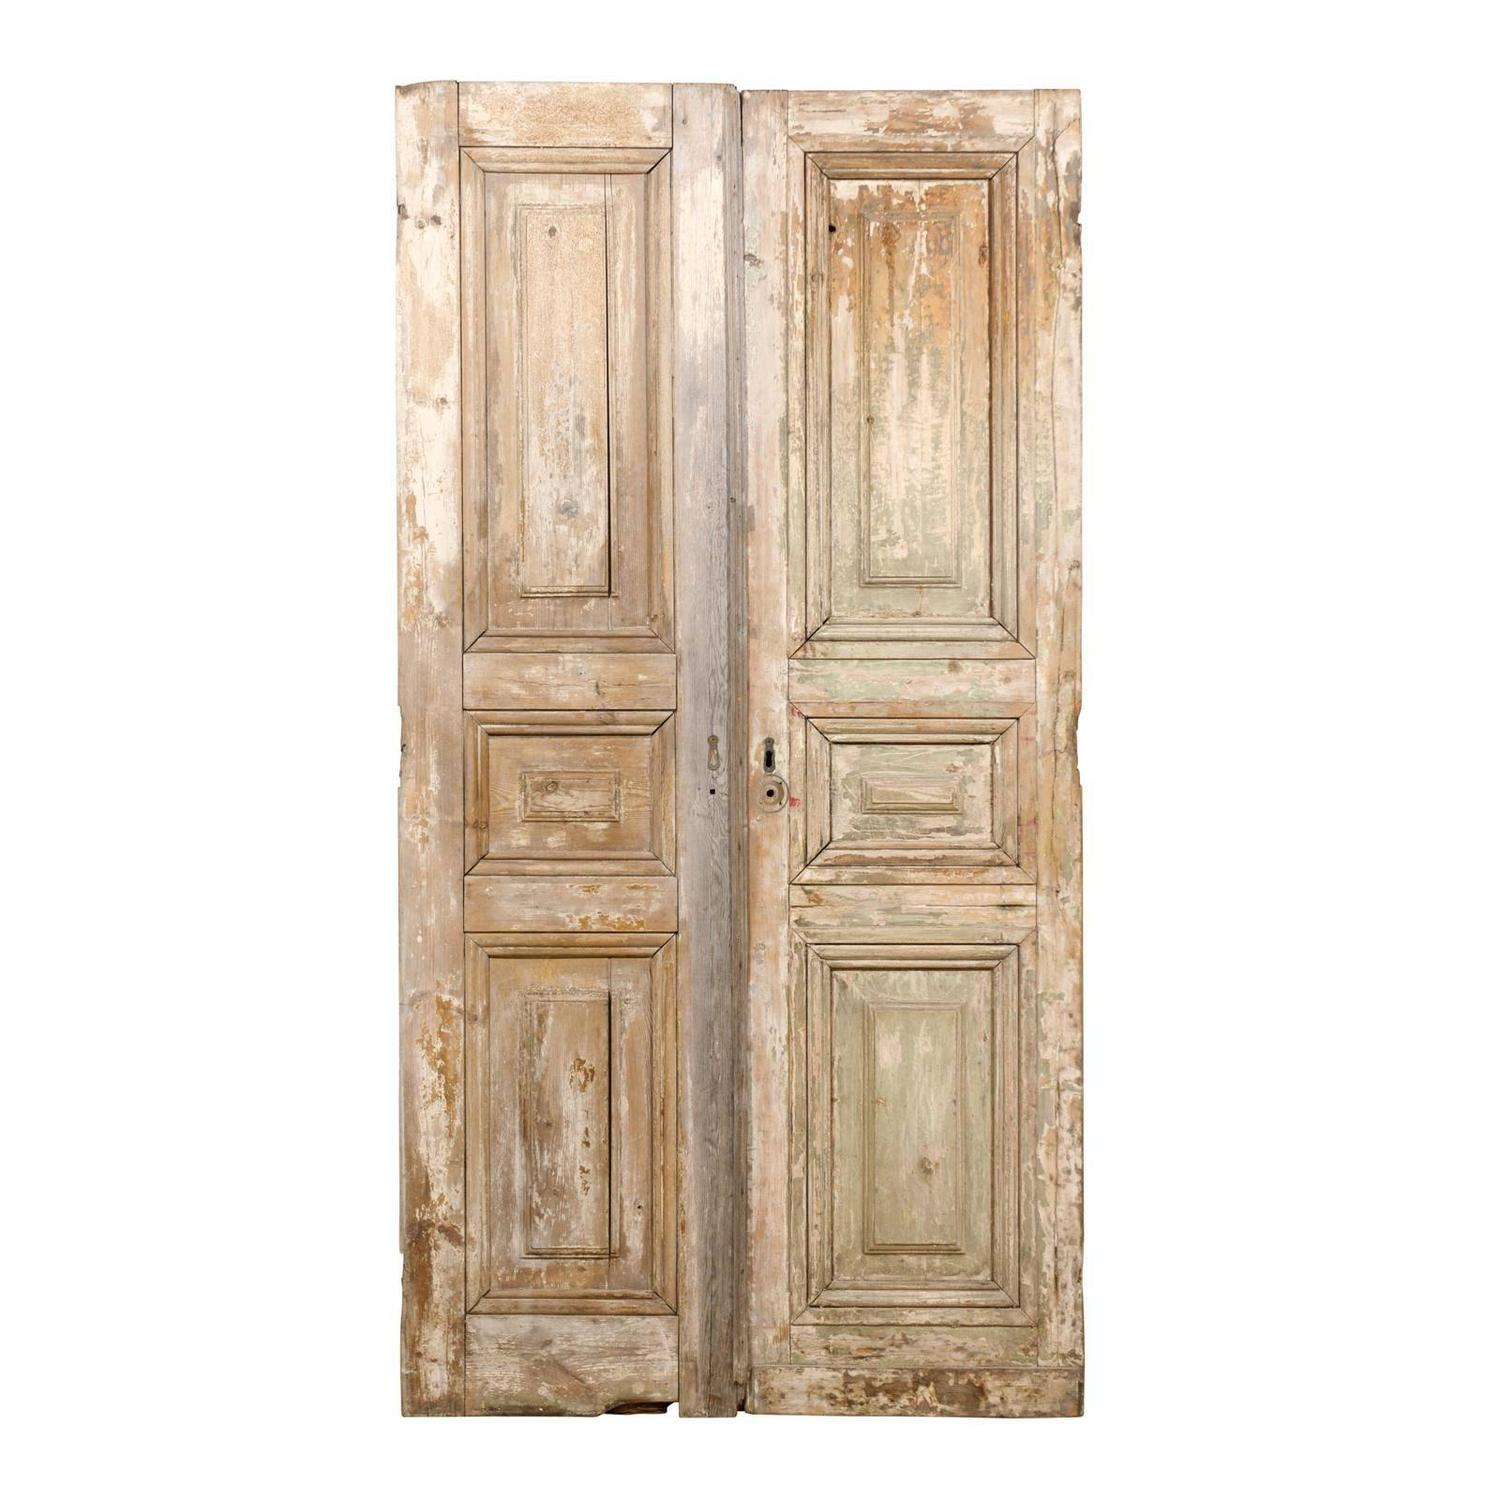 Excellent Reclaimed Wood Doors For Sale Atlanta Photos Exterior Ideas 3d